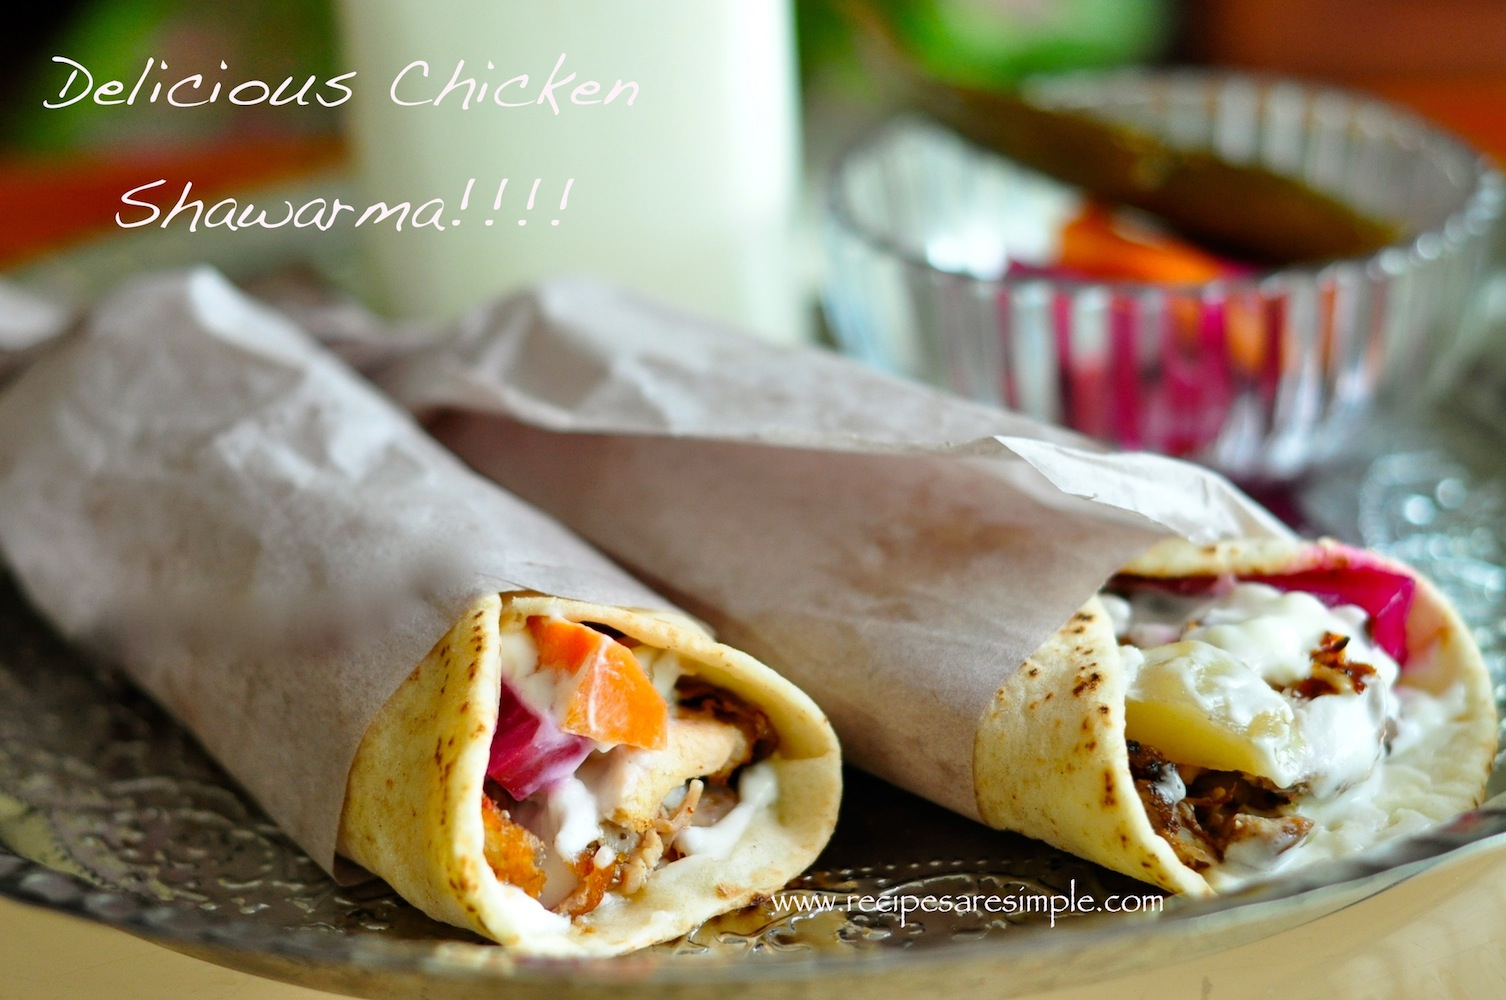 Tastiest Chicken Shawarma Recipe Ever!